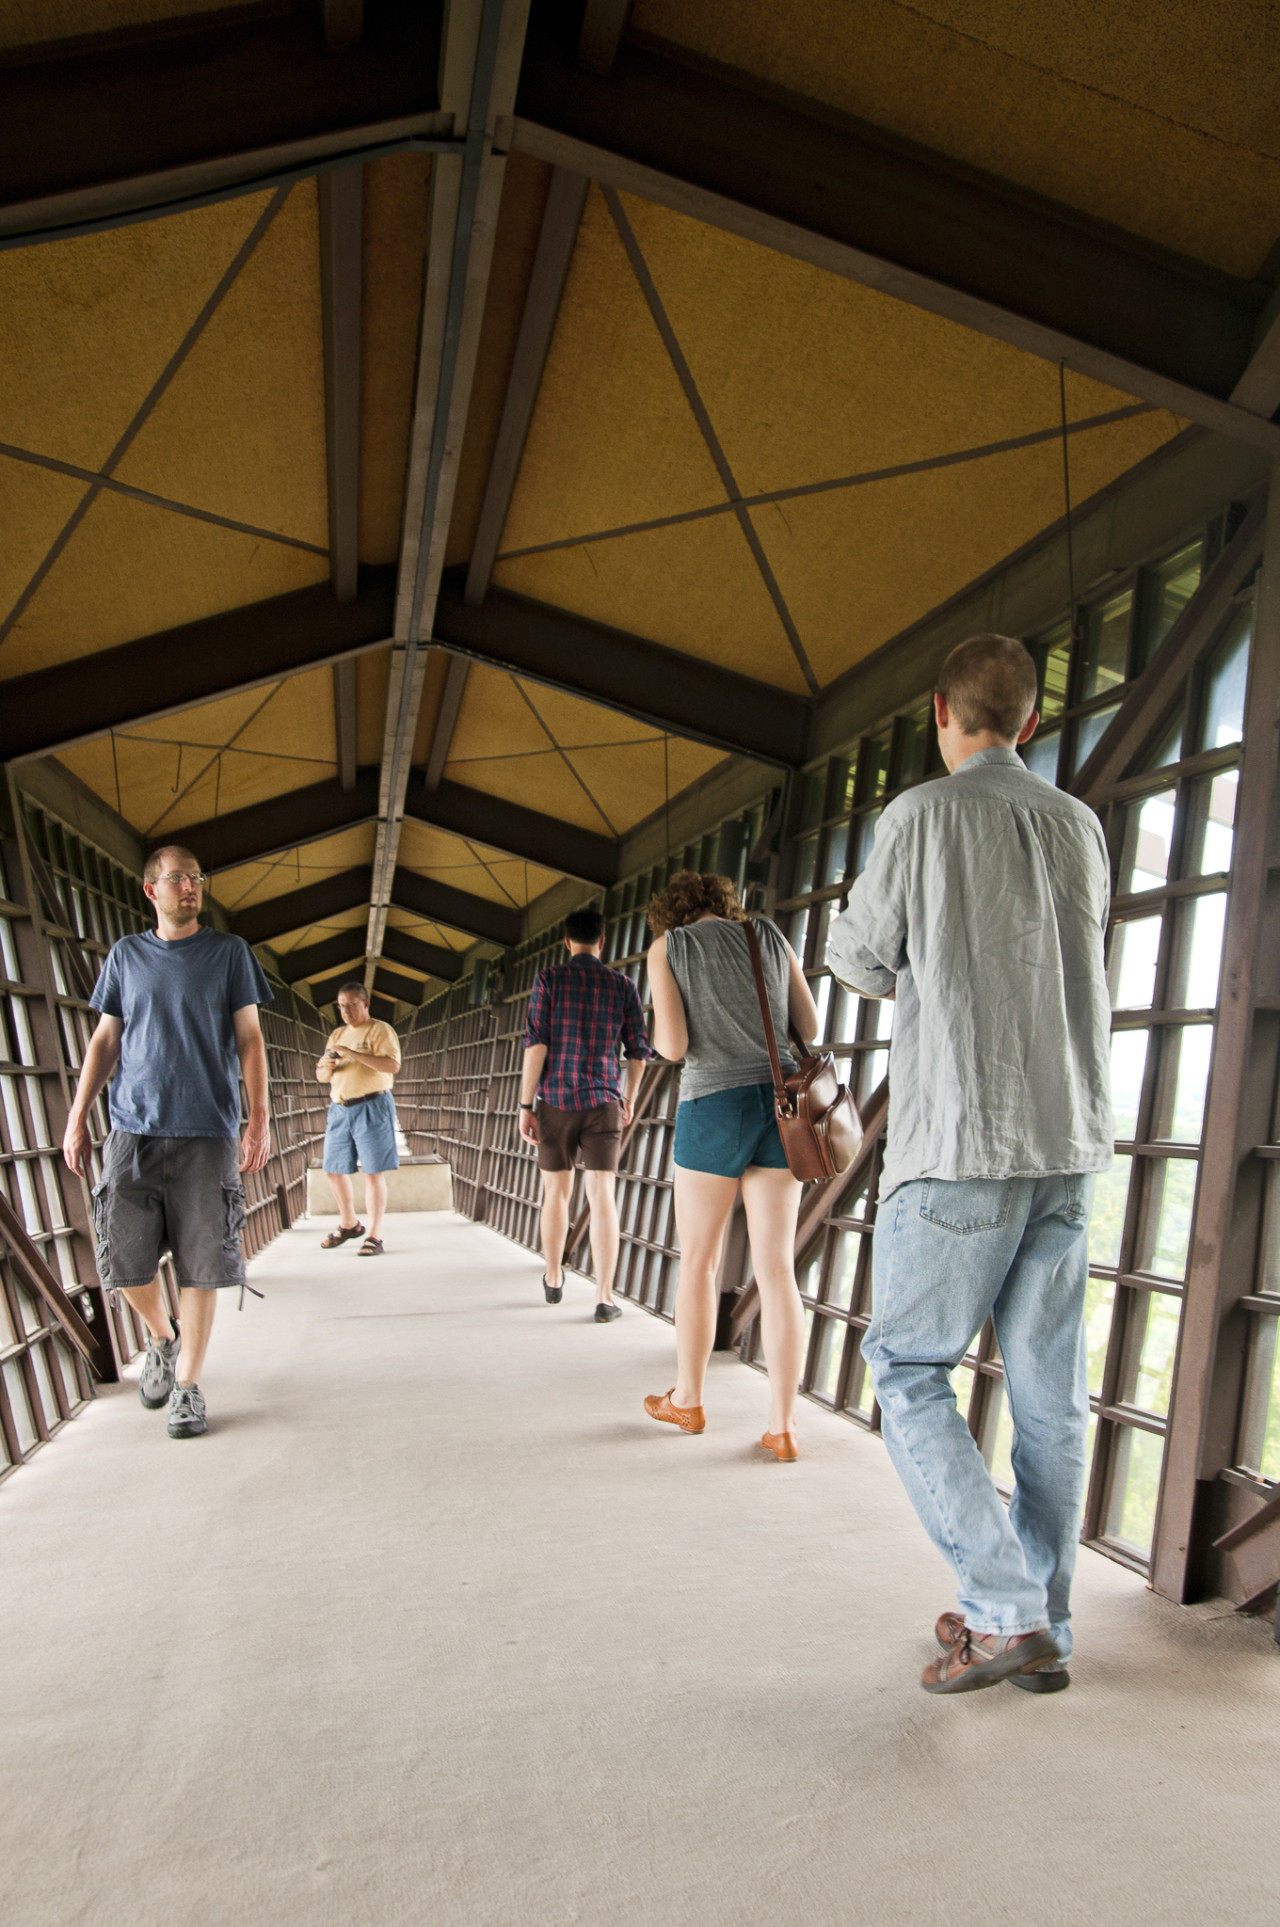 Visitors walk the length of the Infinity Room at the House on the Rock.